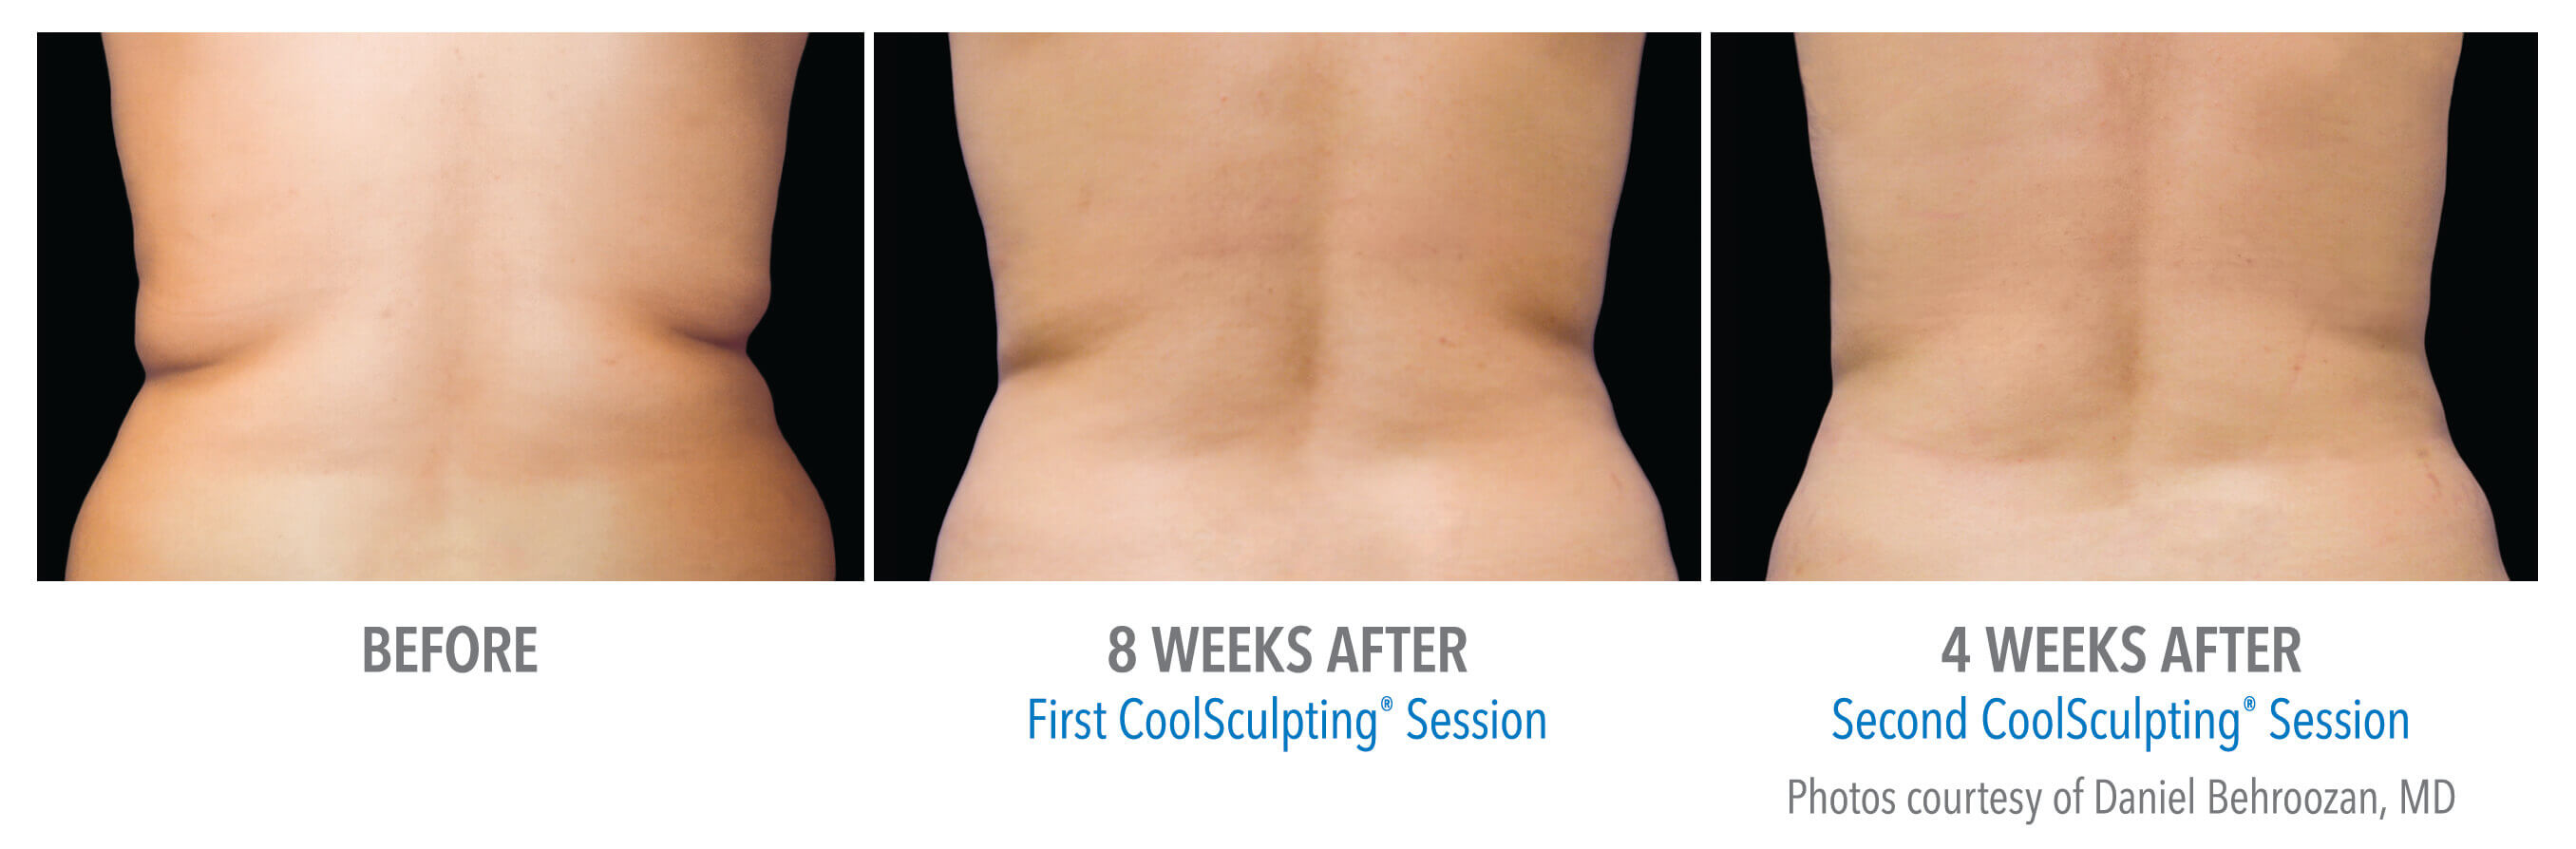 CoolSculpting Love Handles - Female